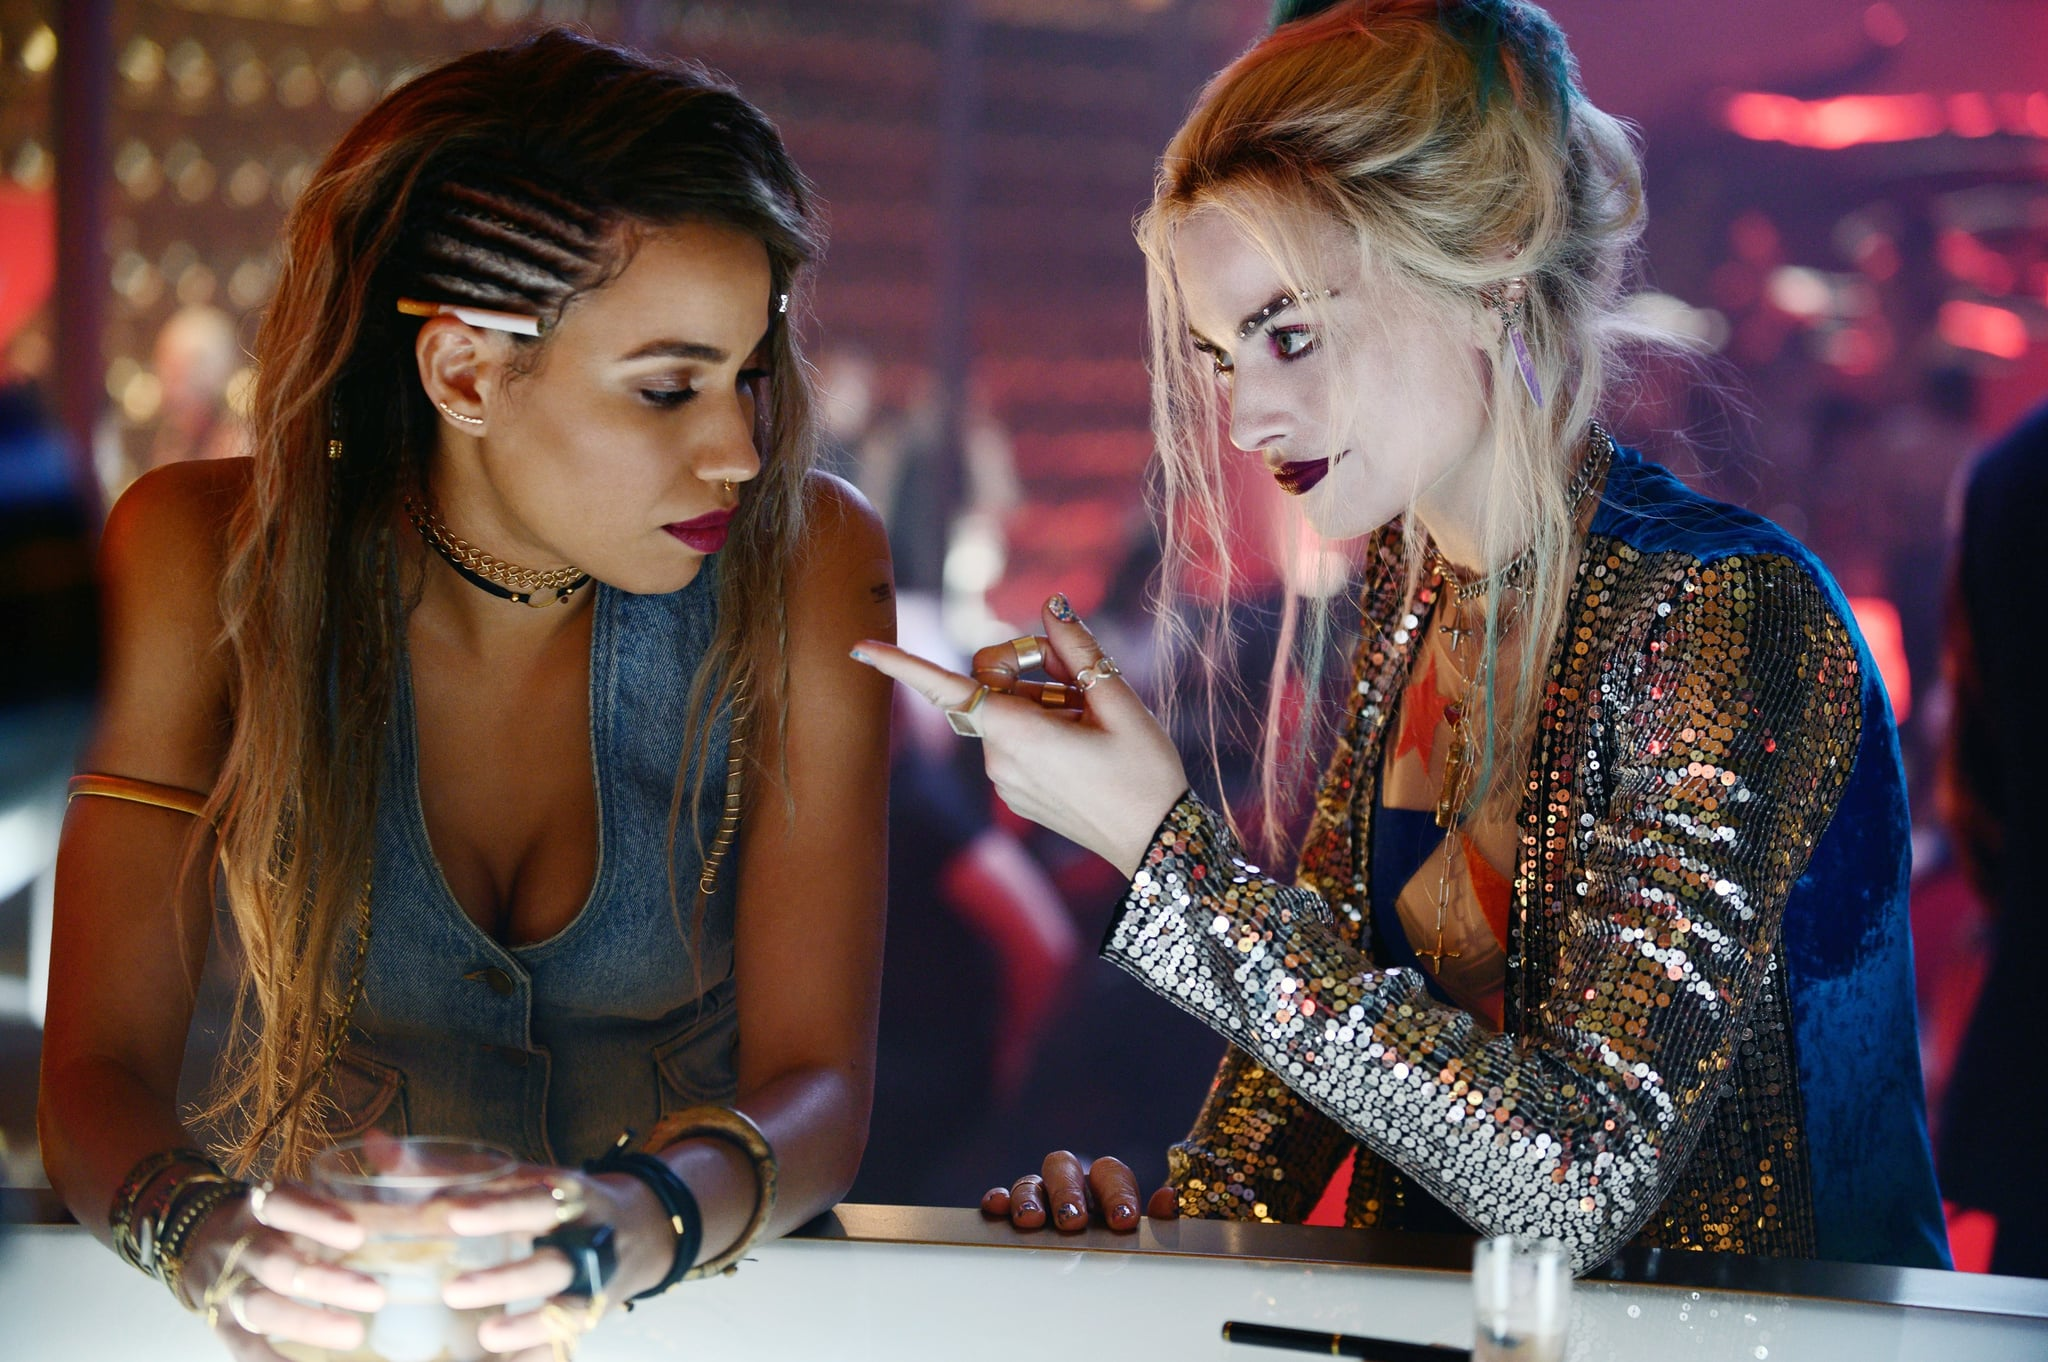 BIRDS OF PREY, from left: Jurnee Smollett-Bell as Black Canary, Margot Robbie as Harley Quinn, 2020. ph: Claudette Barius /  Warner Bros. / courtesy Everett Collection